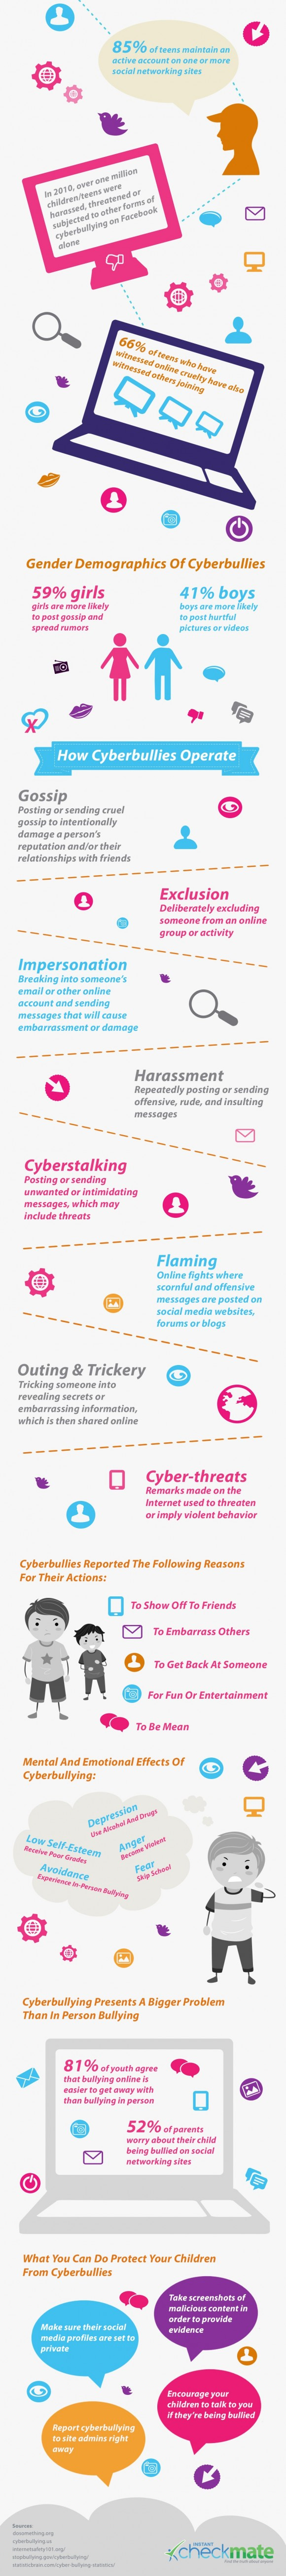 infographic_cyberbullying2